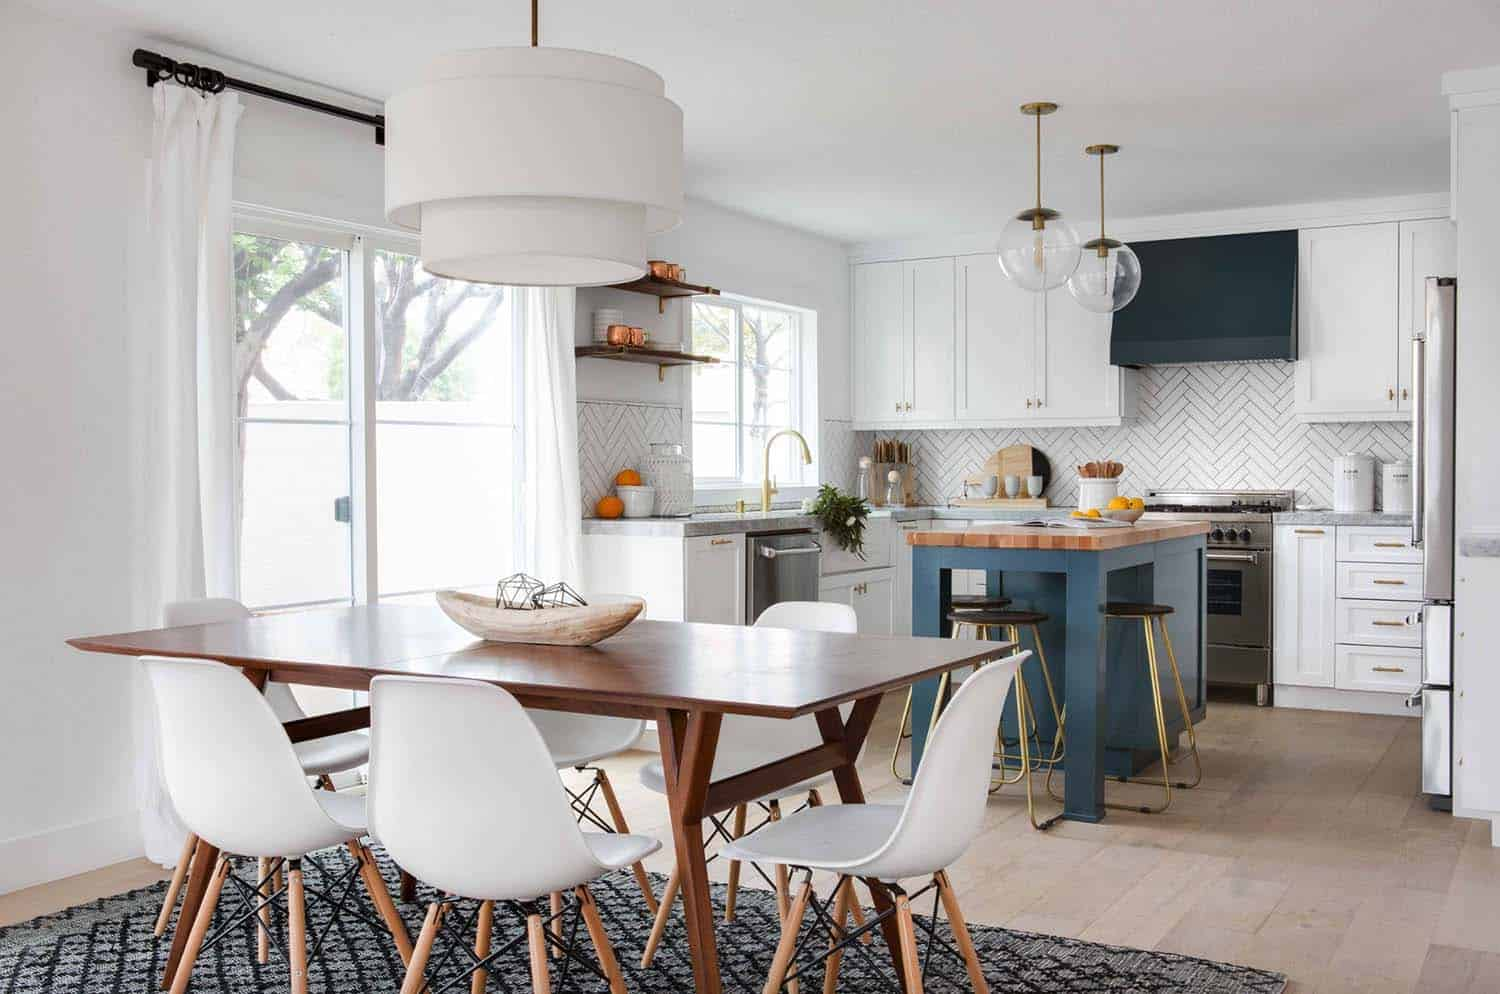 California Eclectic Home-Lindye Galloway Interiors-18-1 Kindesign